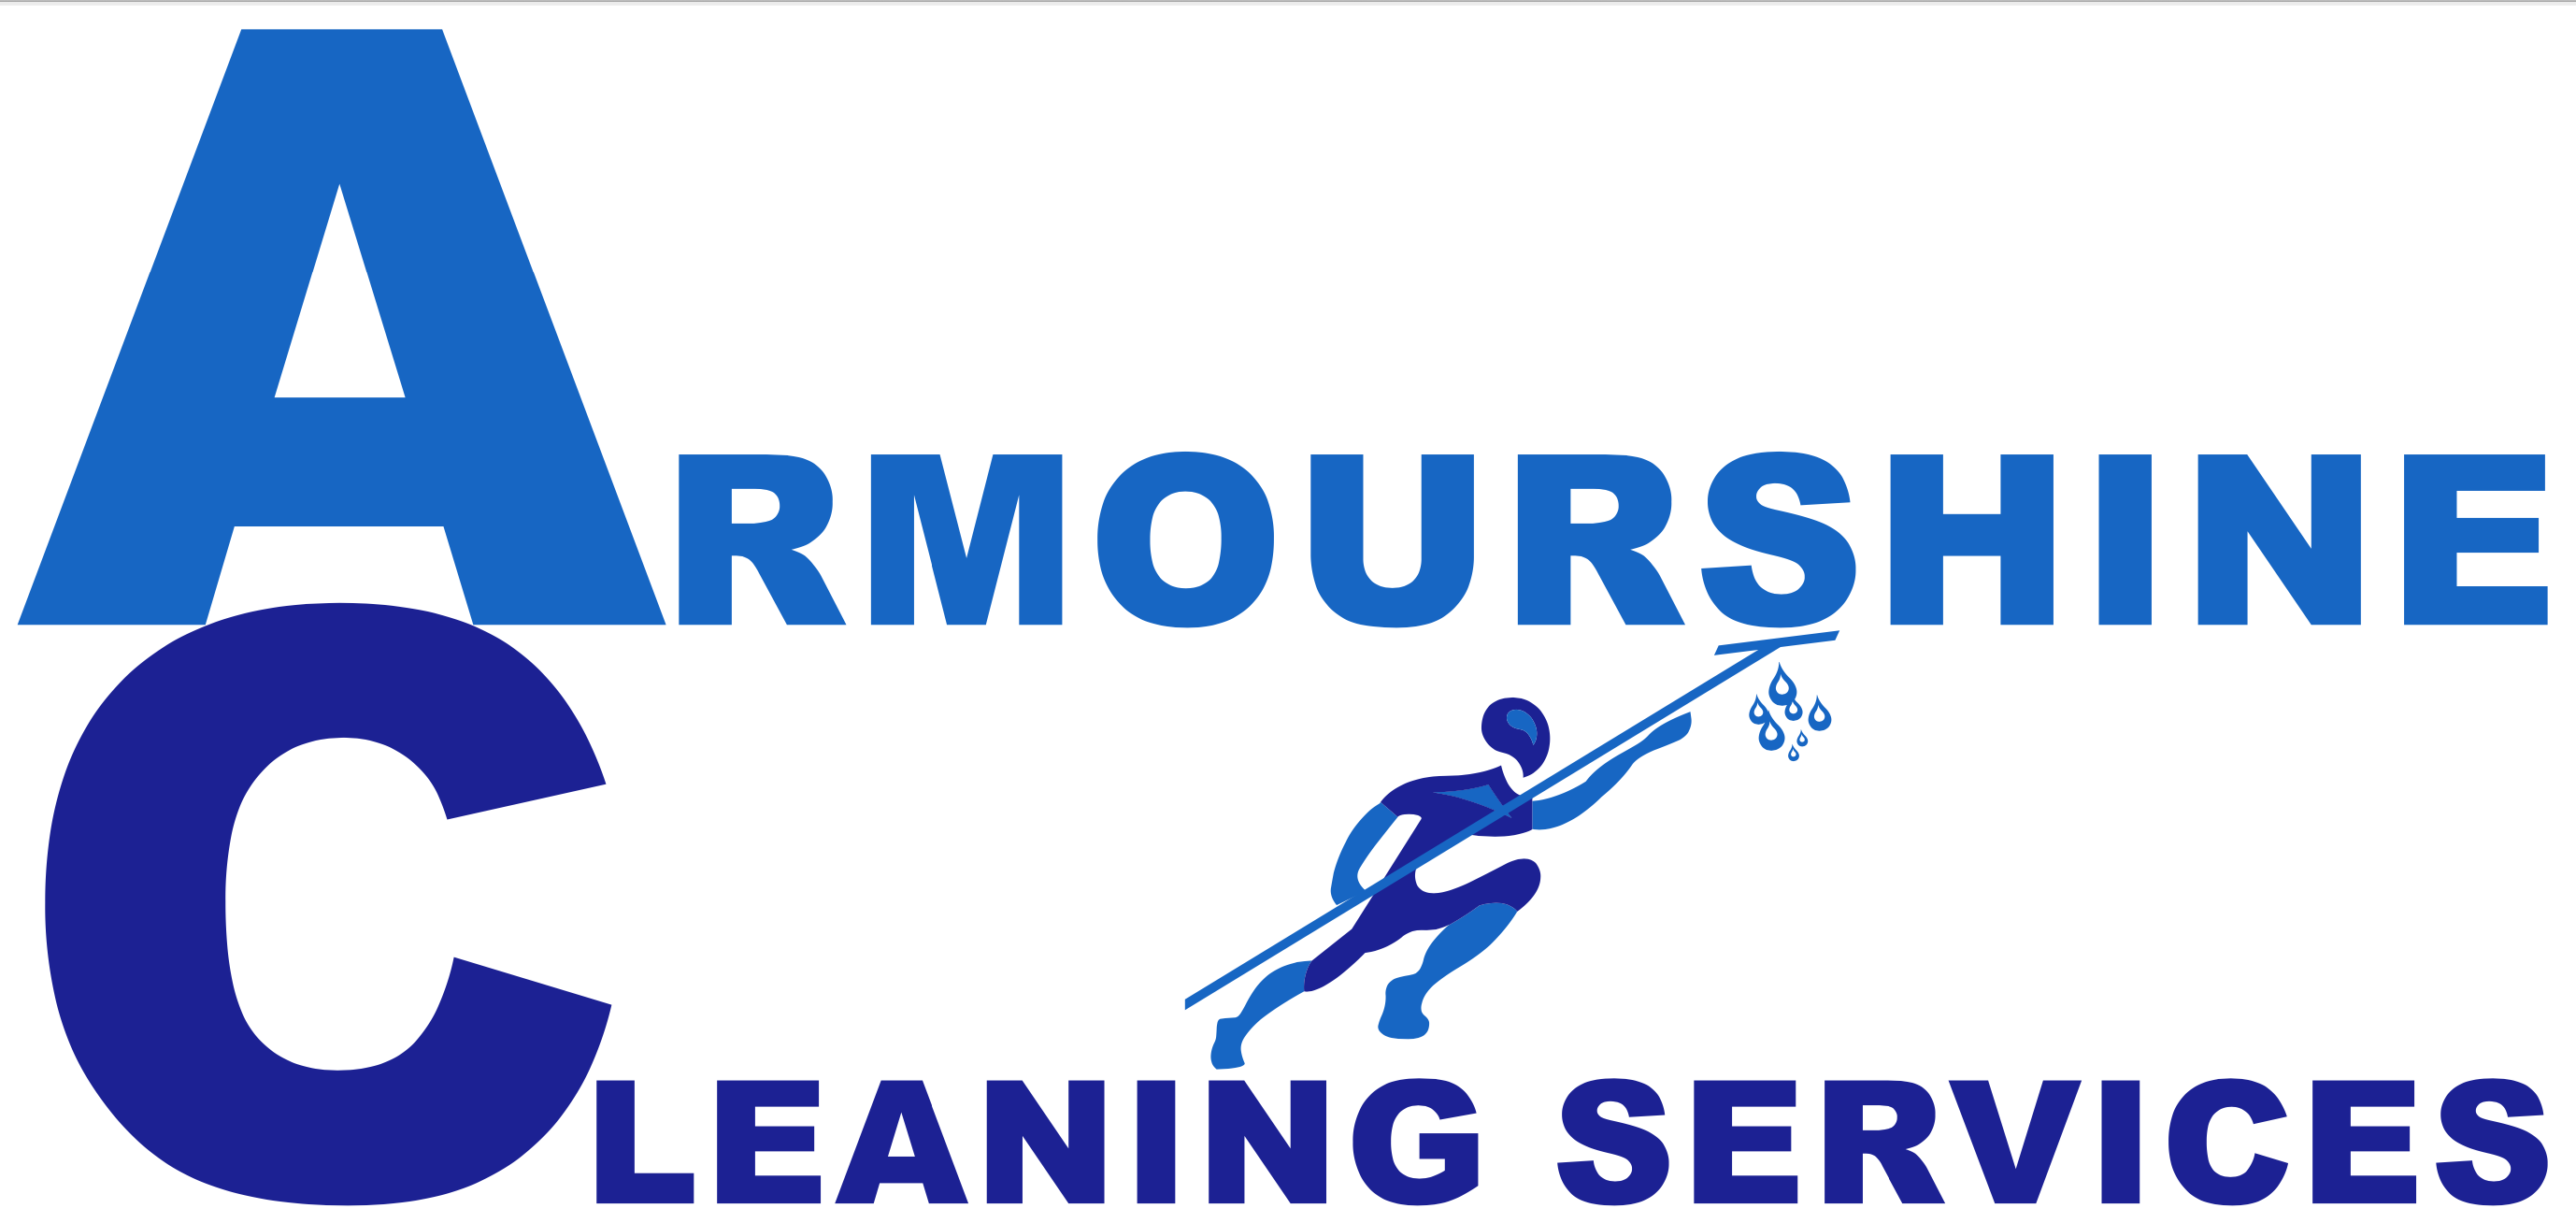 Armourshine Cleaning Services Verified Logo